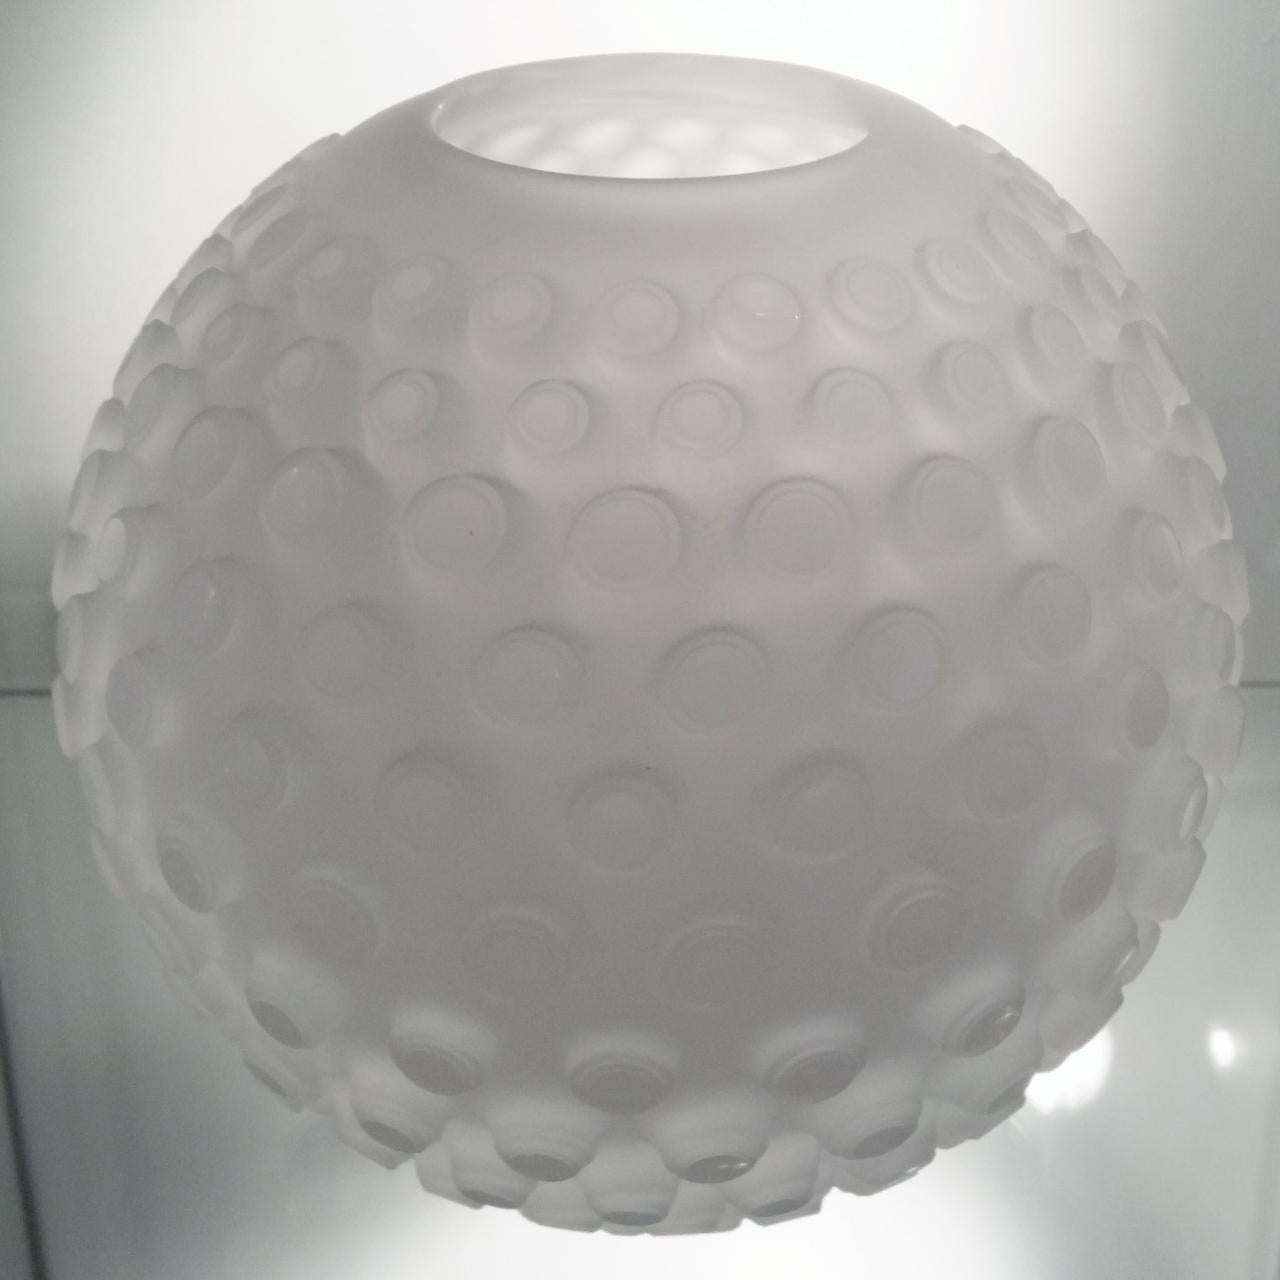 Opaline Granate - opaline white contemporary modern abstract glass object